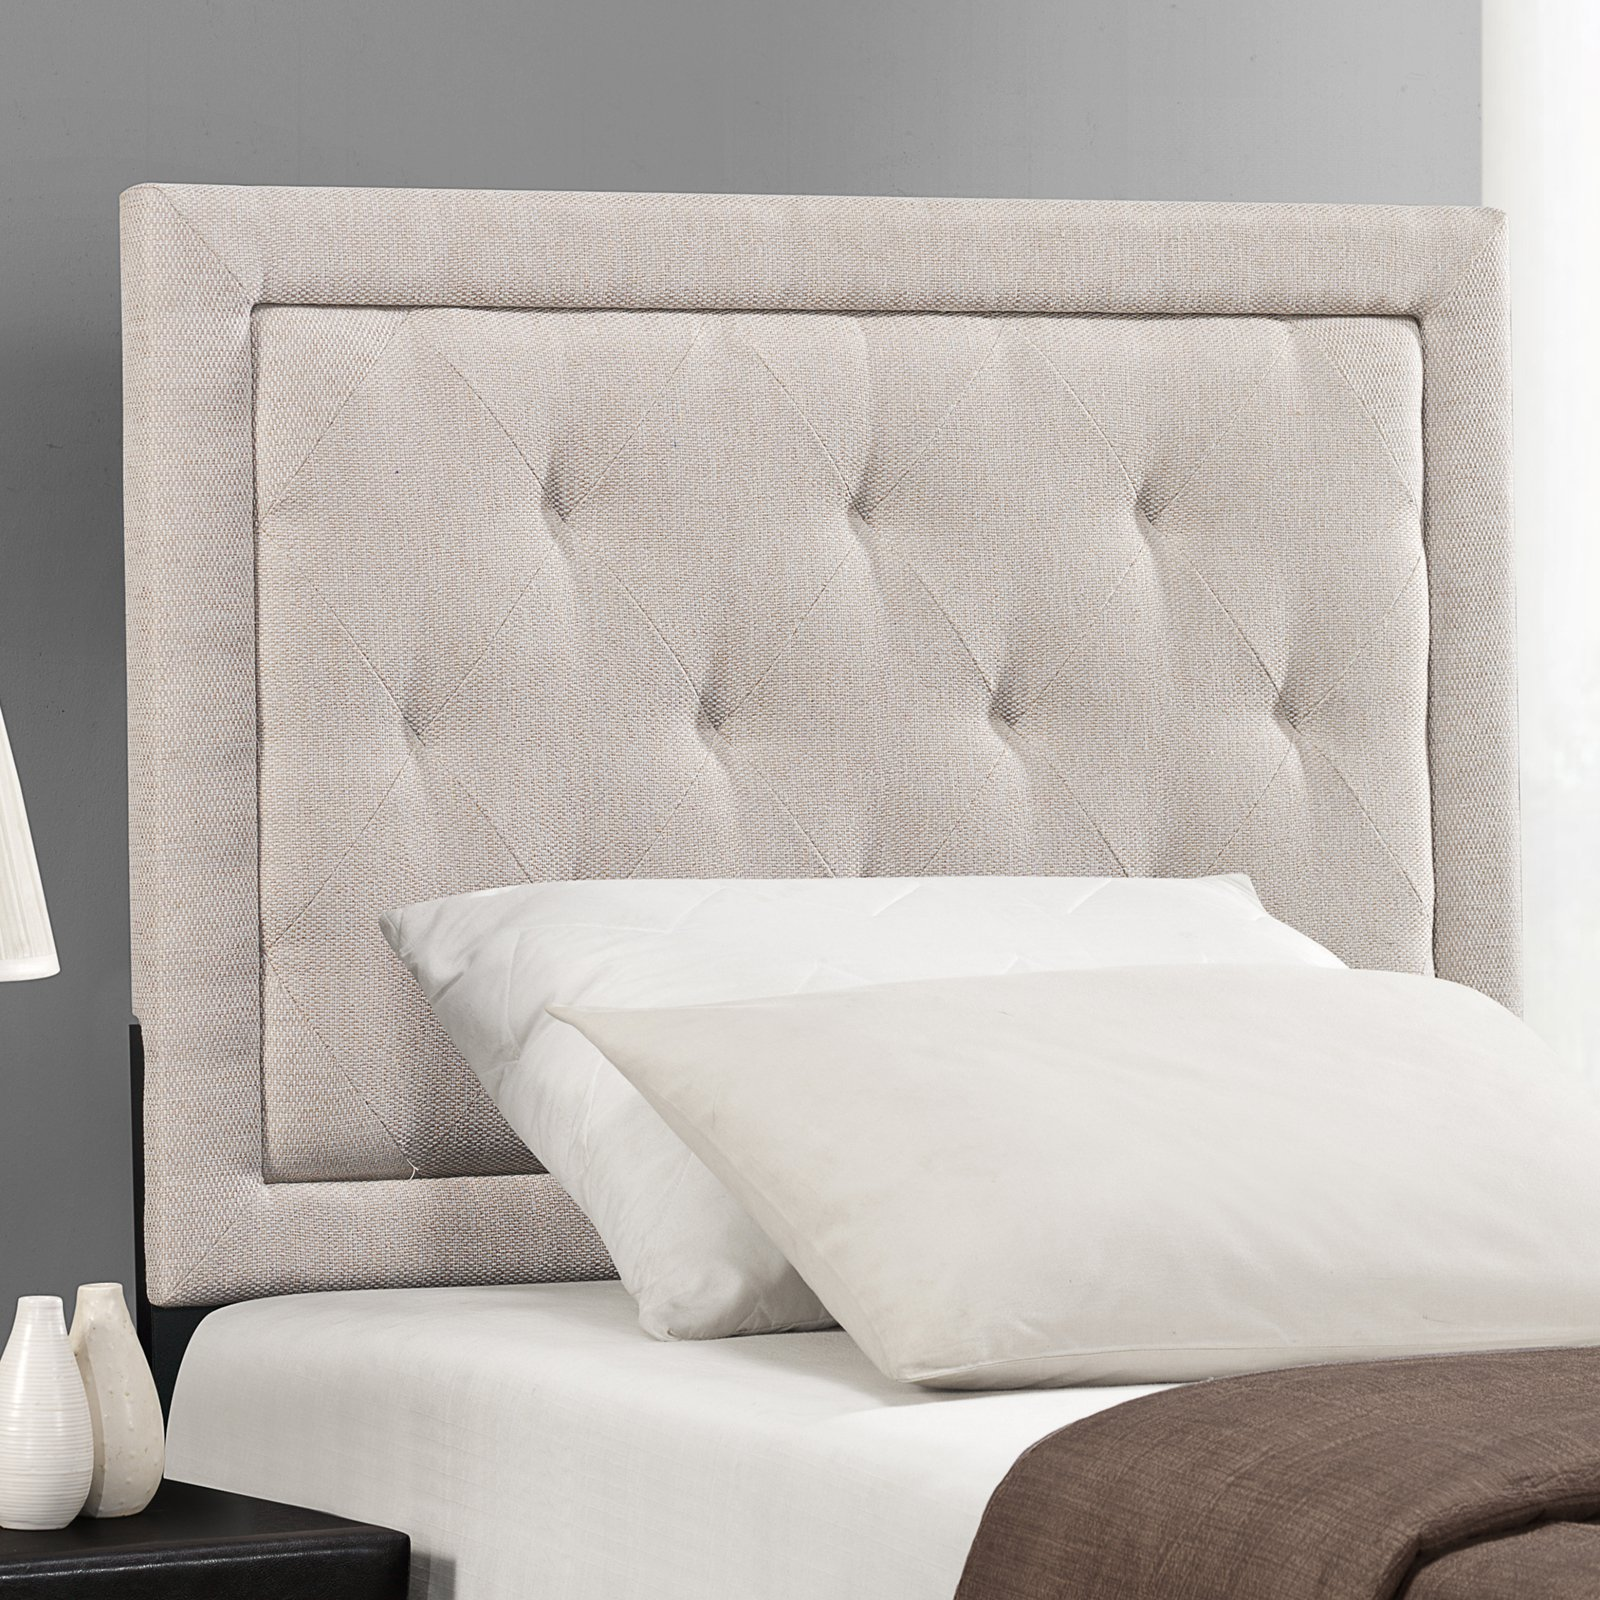 Hillsdale Furniture Becker King Headboard with Bedframe, Cream